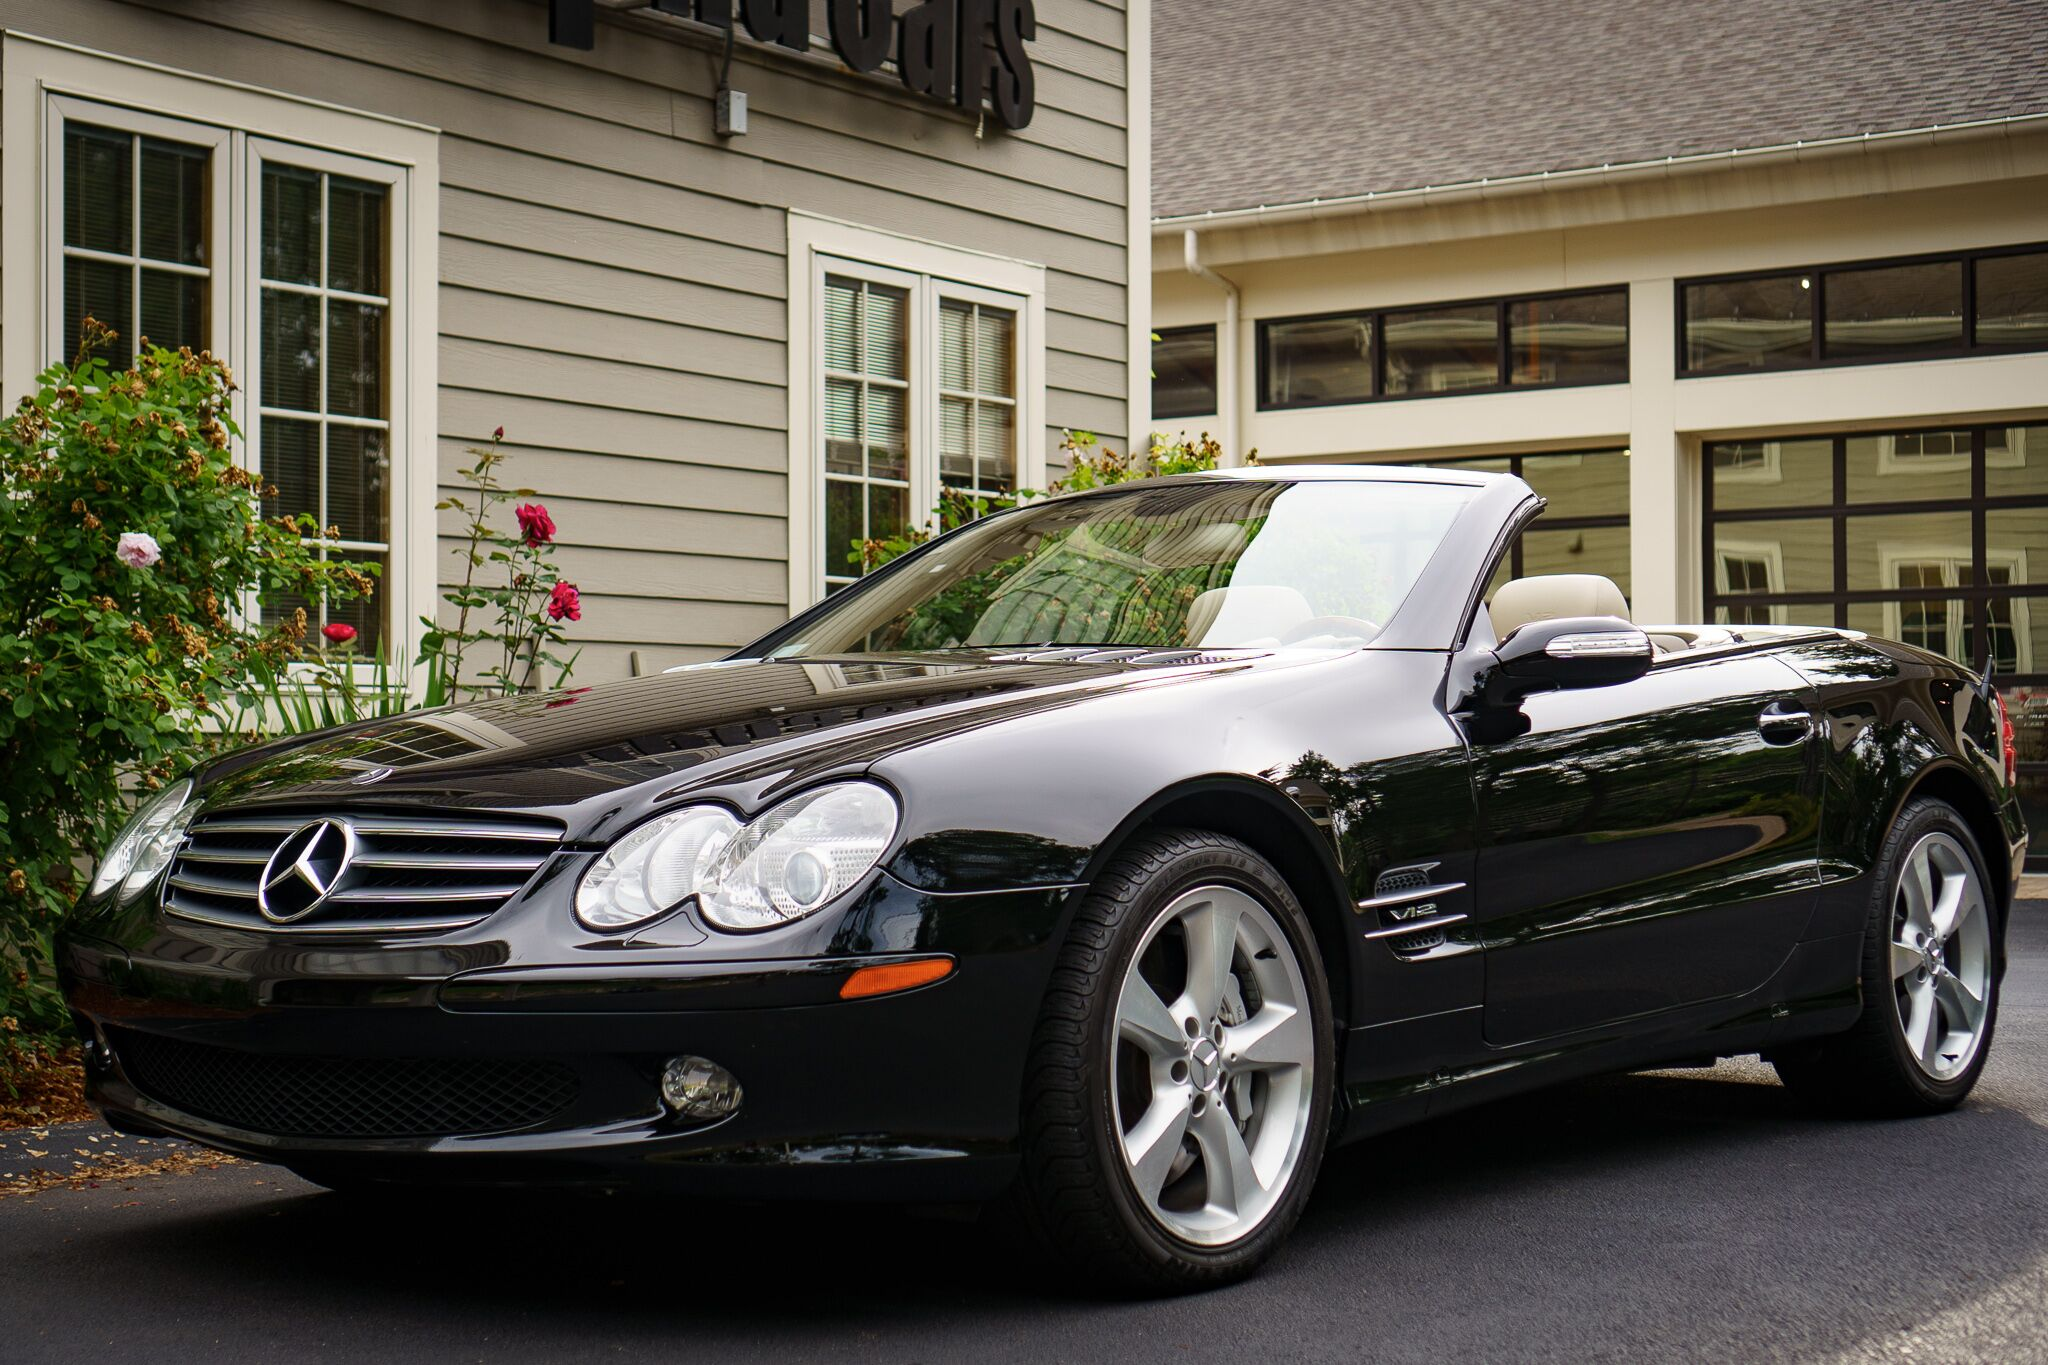 2005 Mercedes-Benz SL600 Roadster